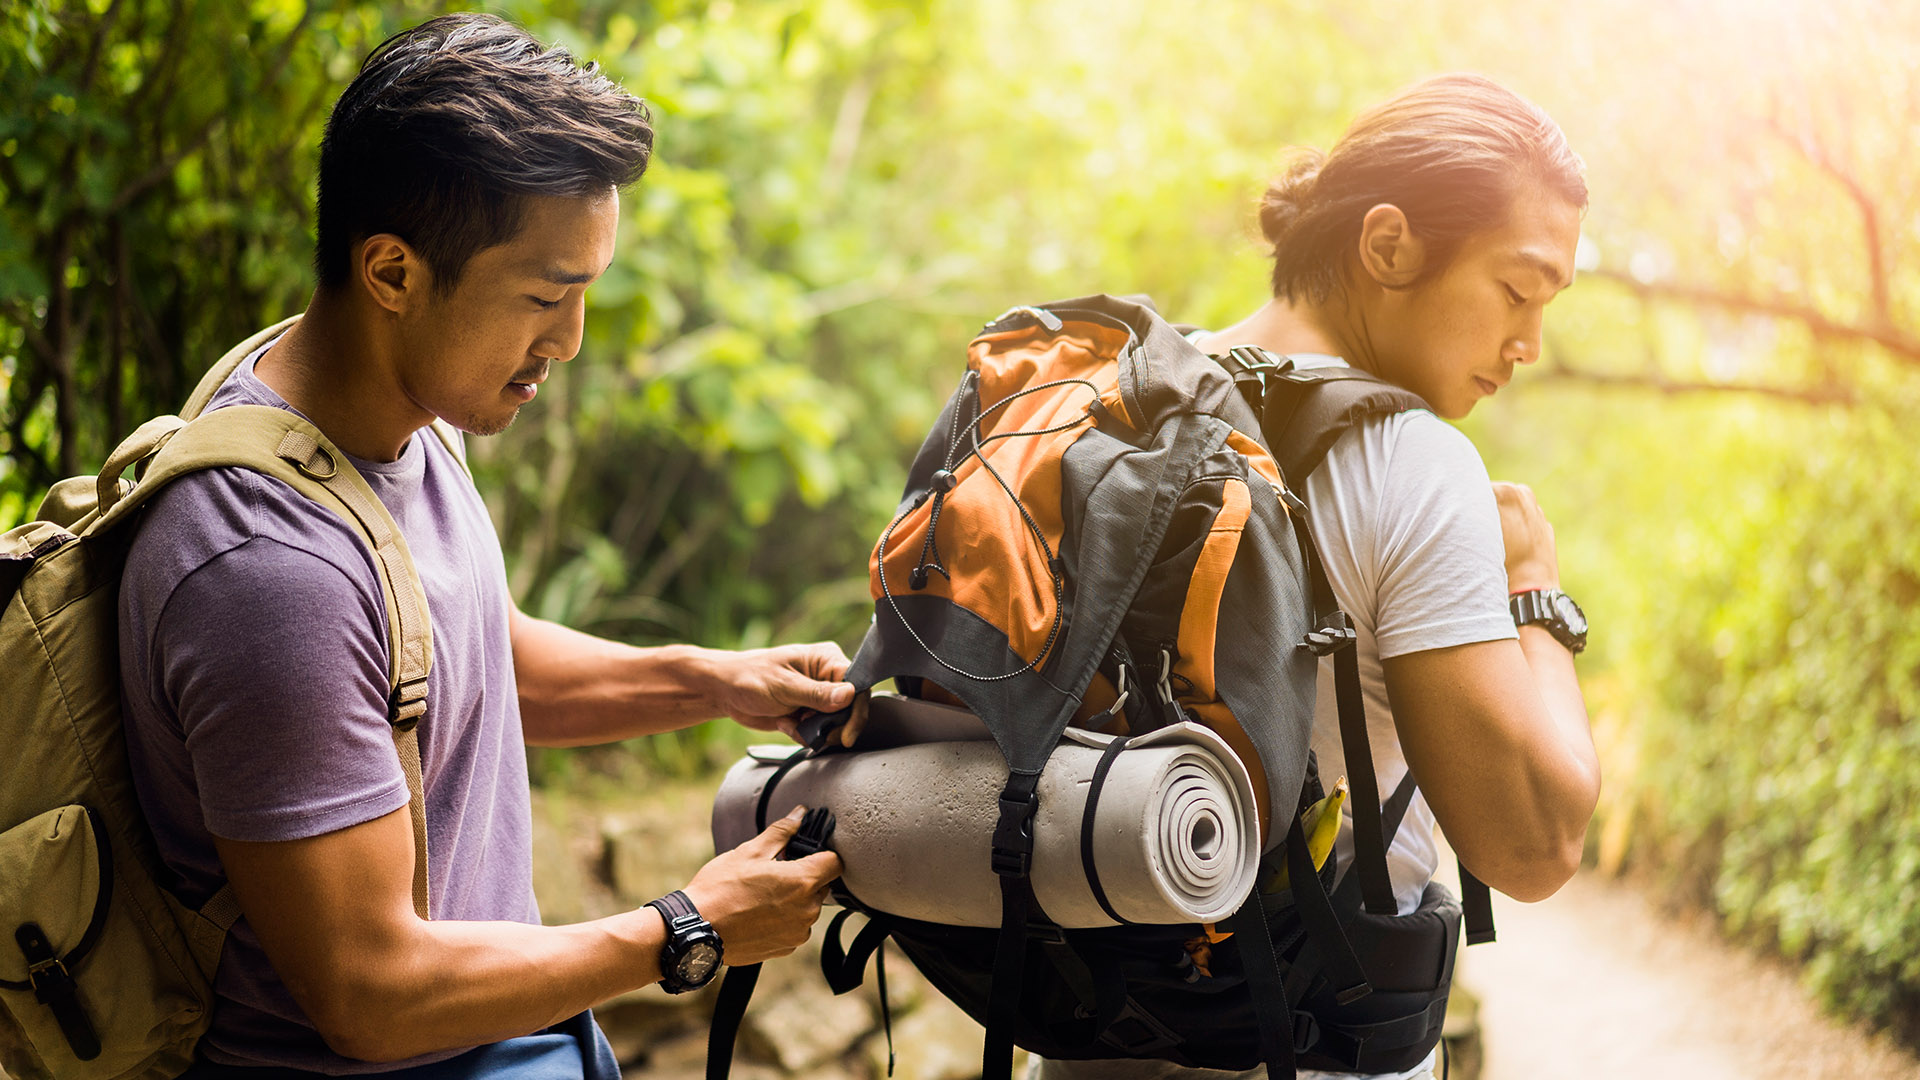 The Only Products You Need in a Hiking Dopp Kit